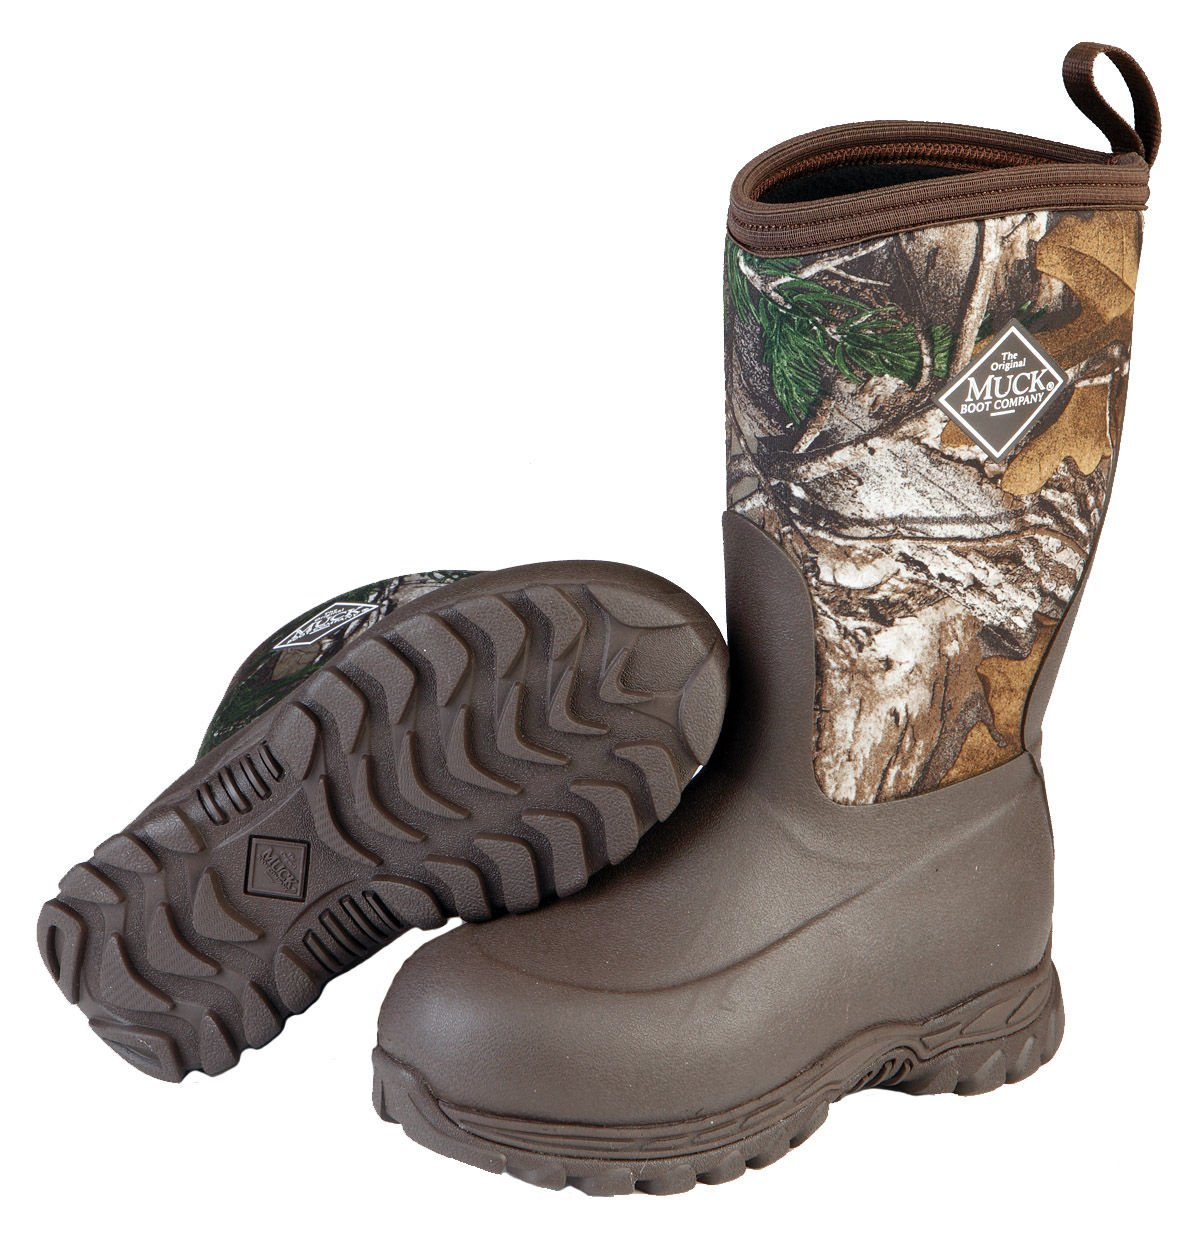 Muck Boot Kids' Rugged II Winter Boots, Brown/Realtree Xtra, 8 Toddler by Muck Boot